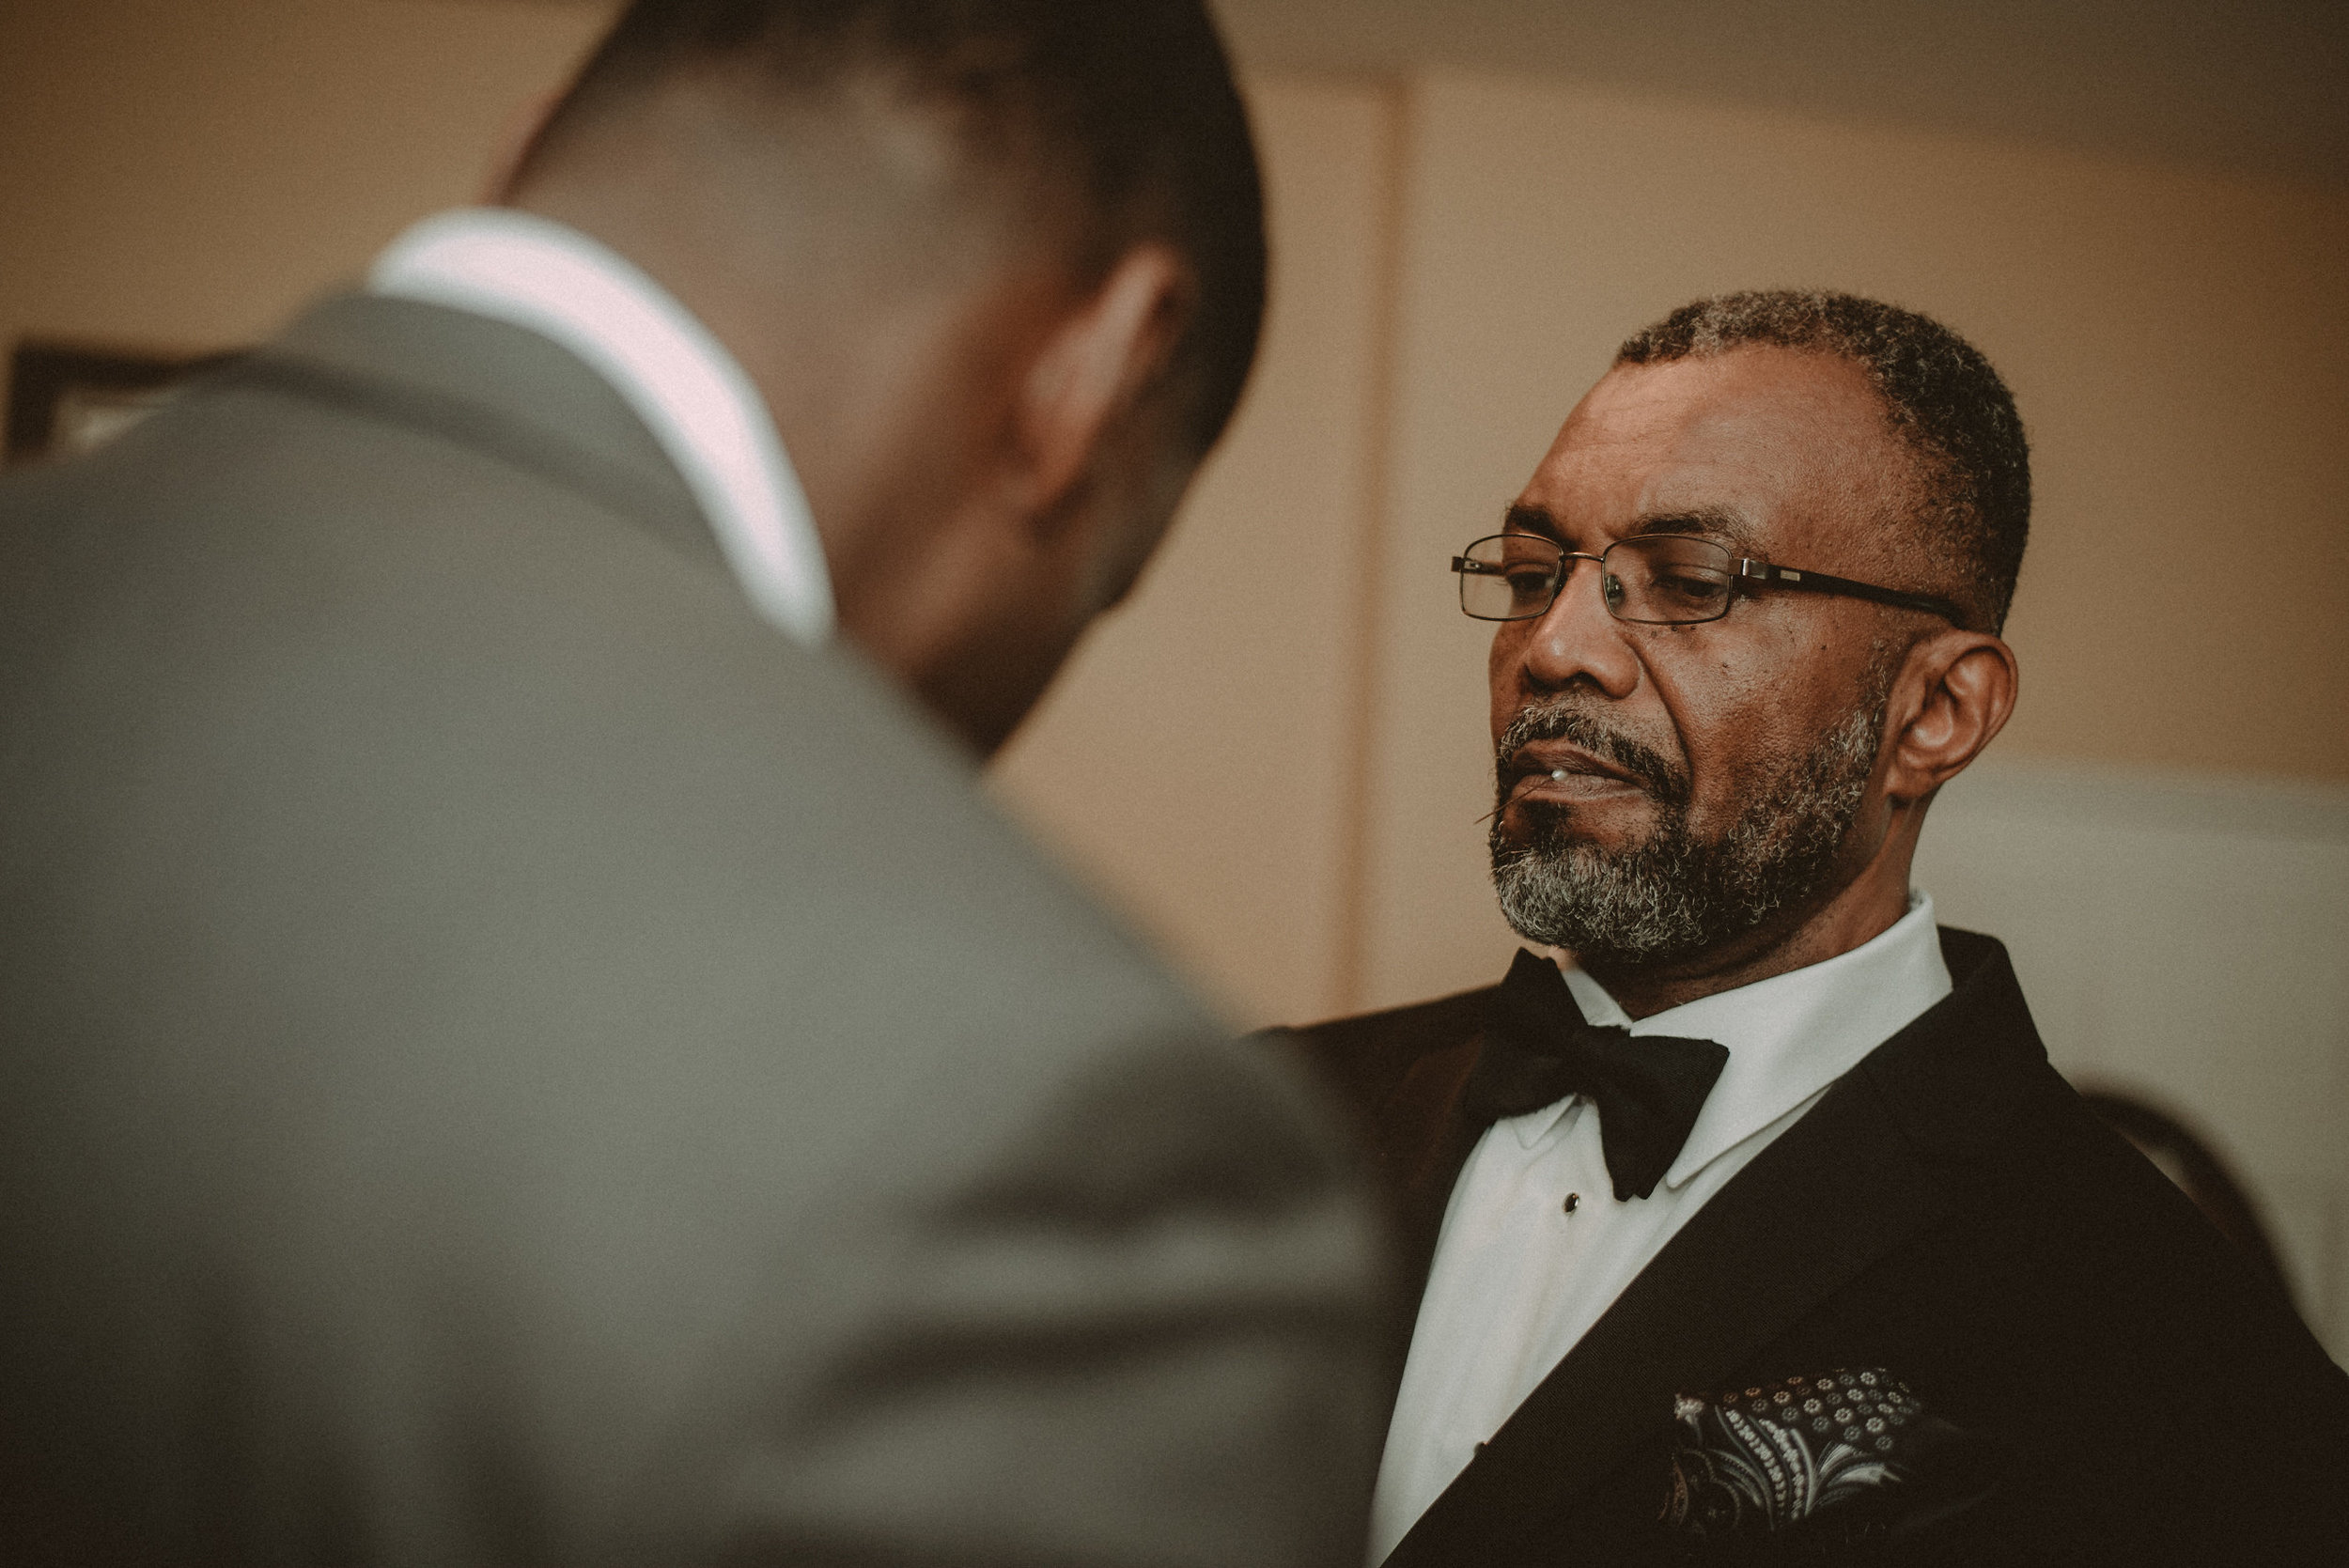 Groom and father getting ready for wedding